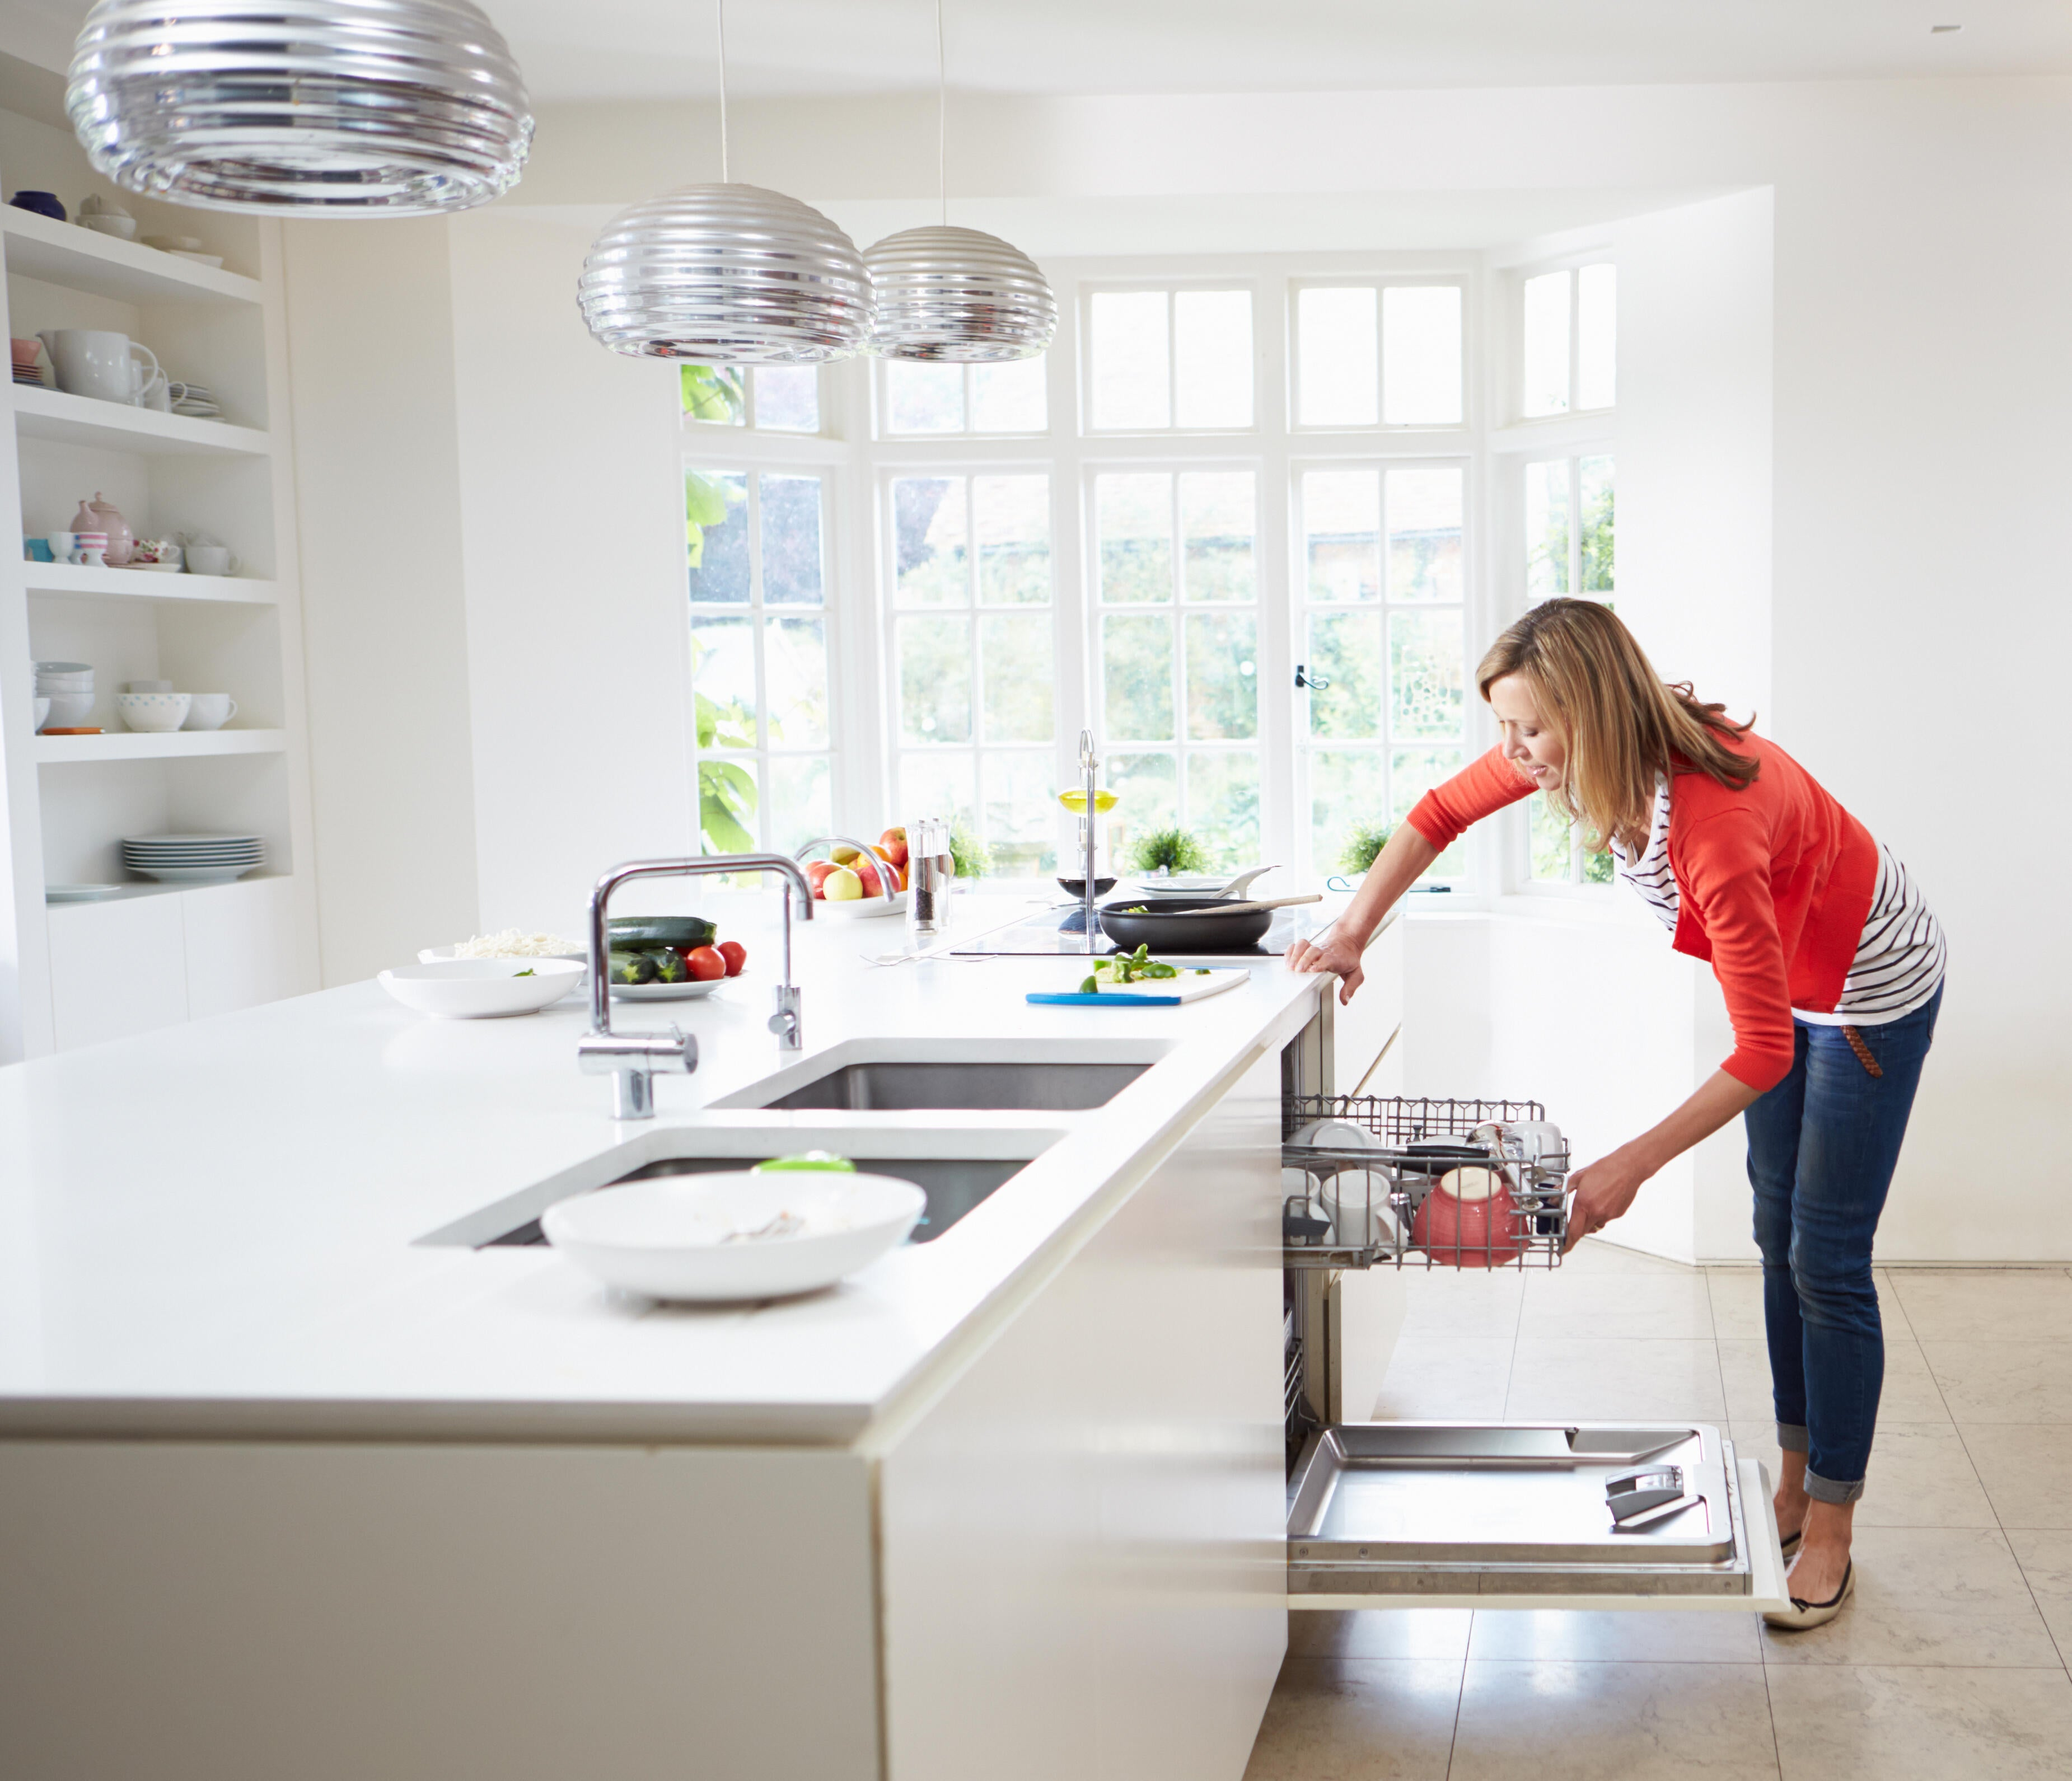 Woman in kitchen with open dishwasher